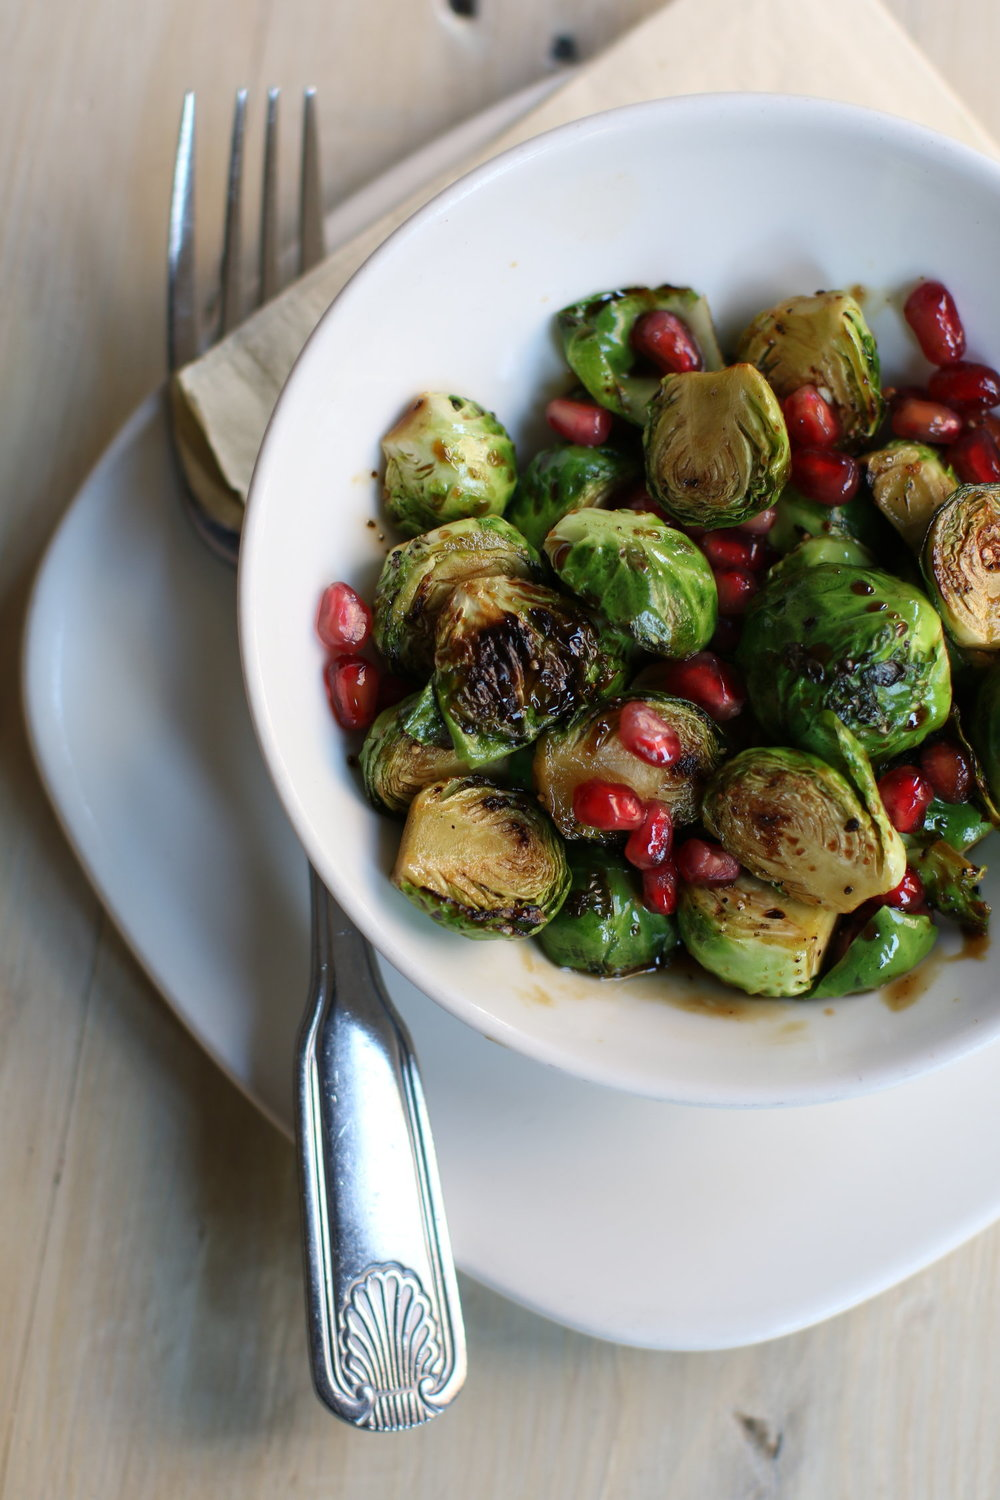 cheese-bar-salad-pomegranate-brussles-sprouts-280A4193.jpg